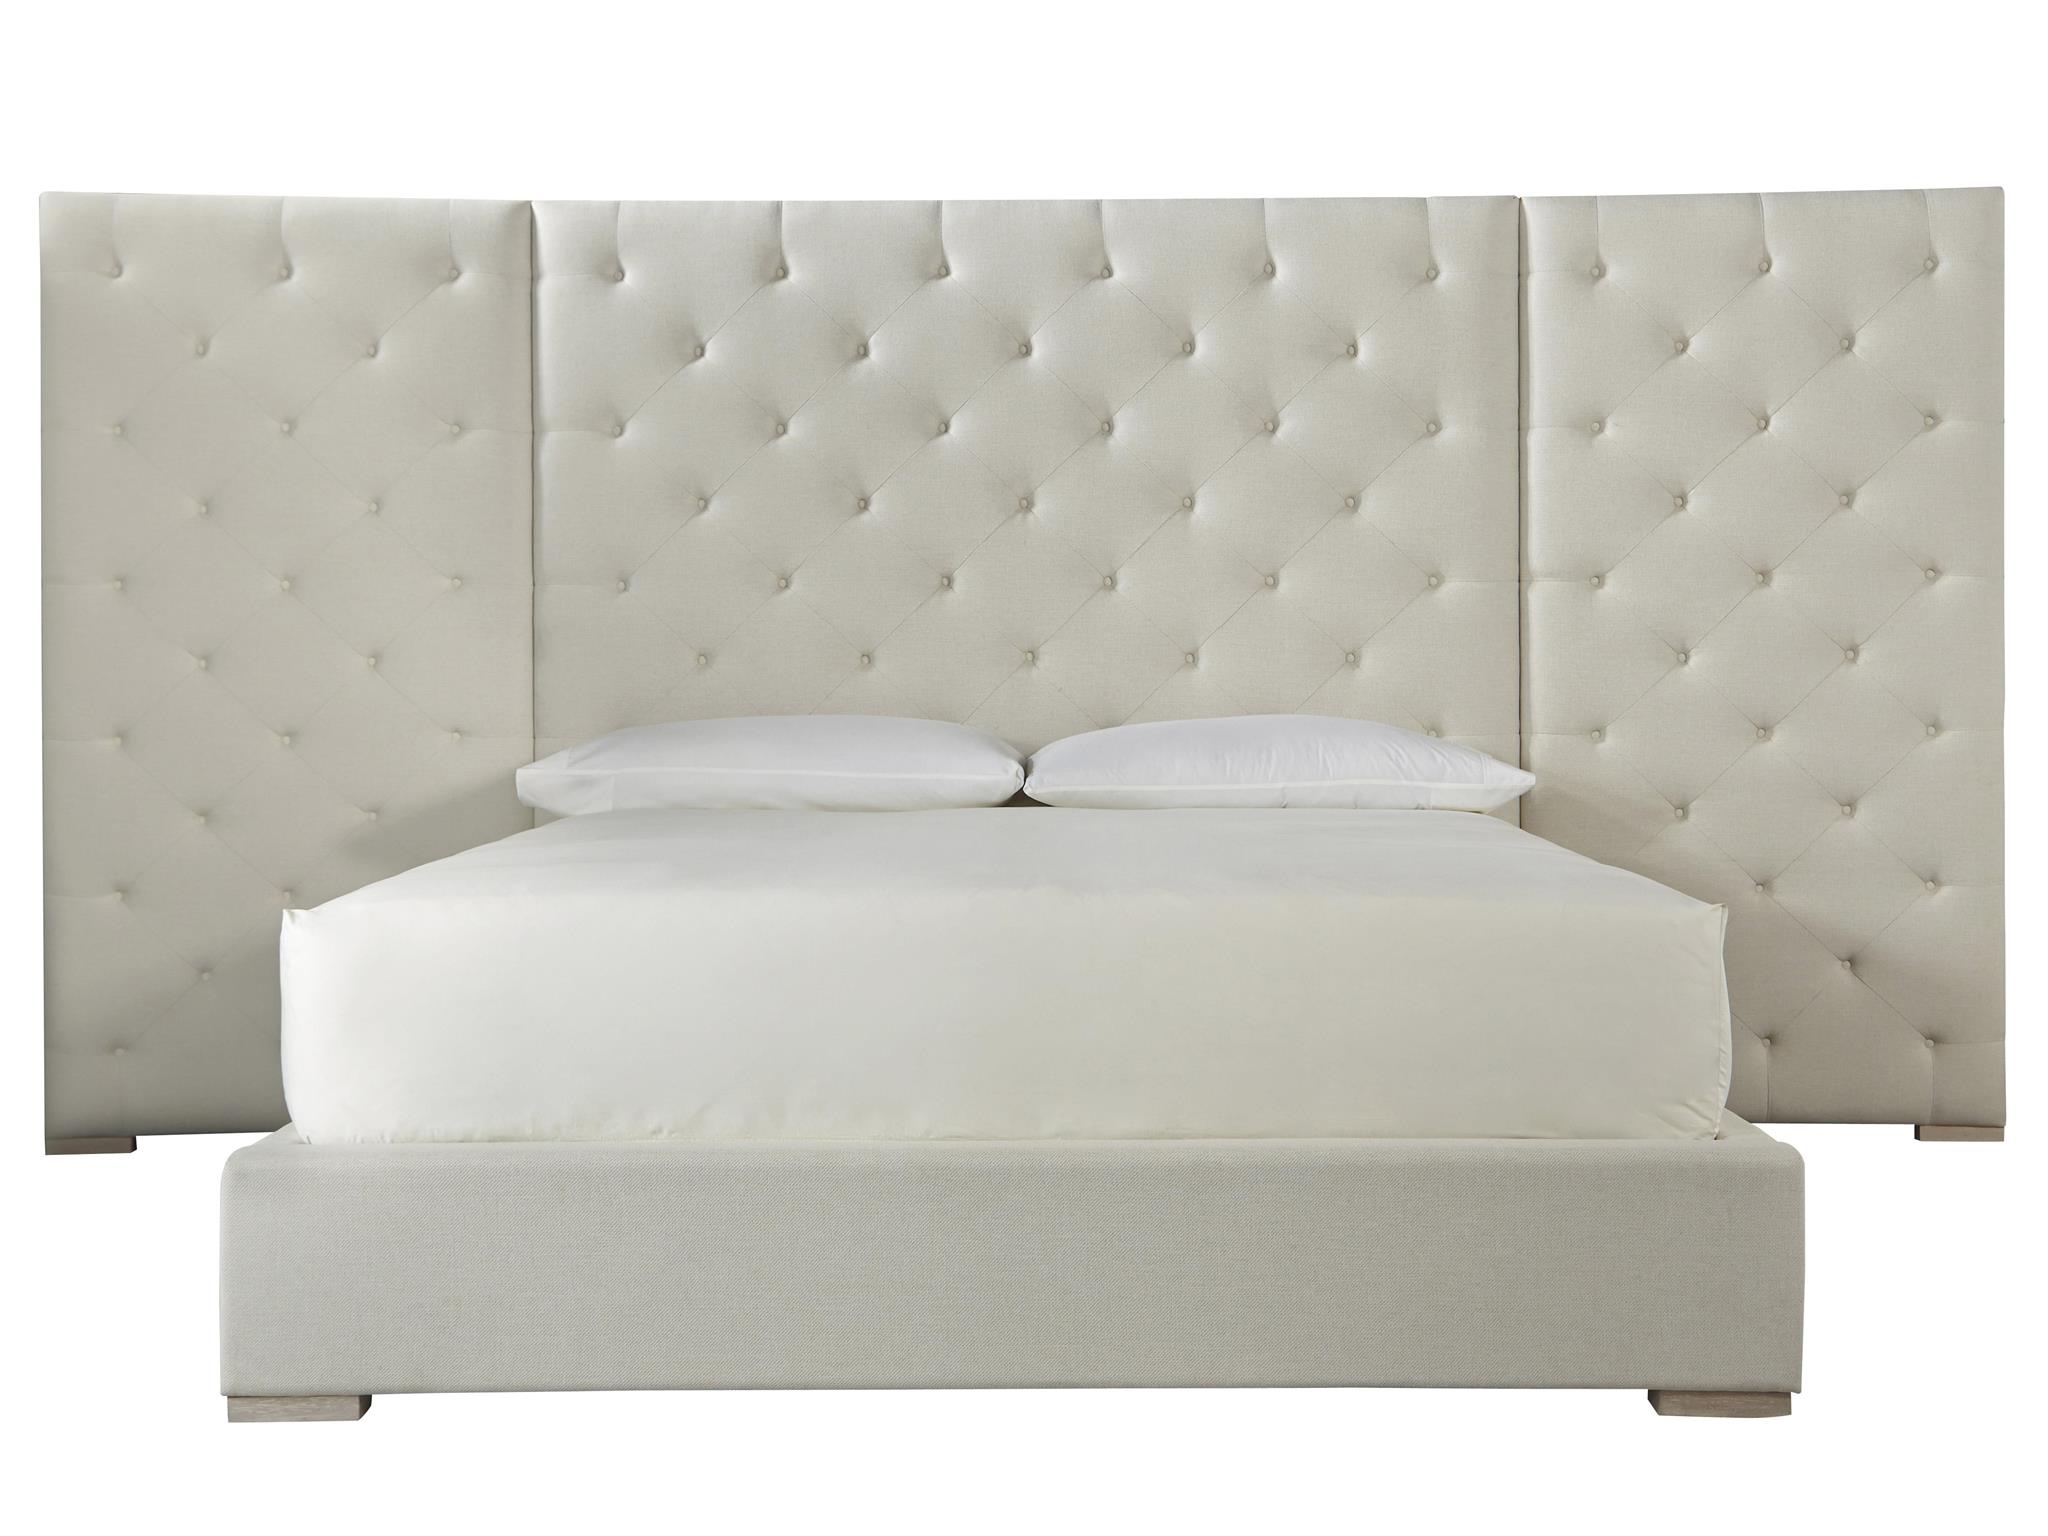 Brando Bed With Panels (King)